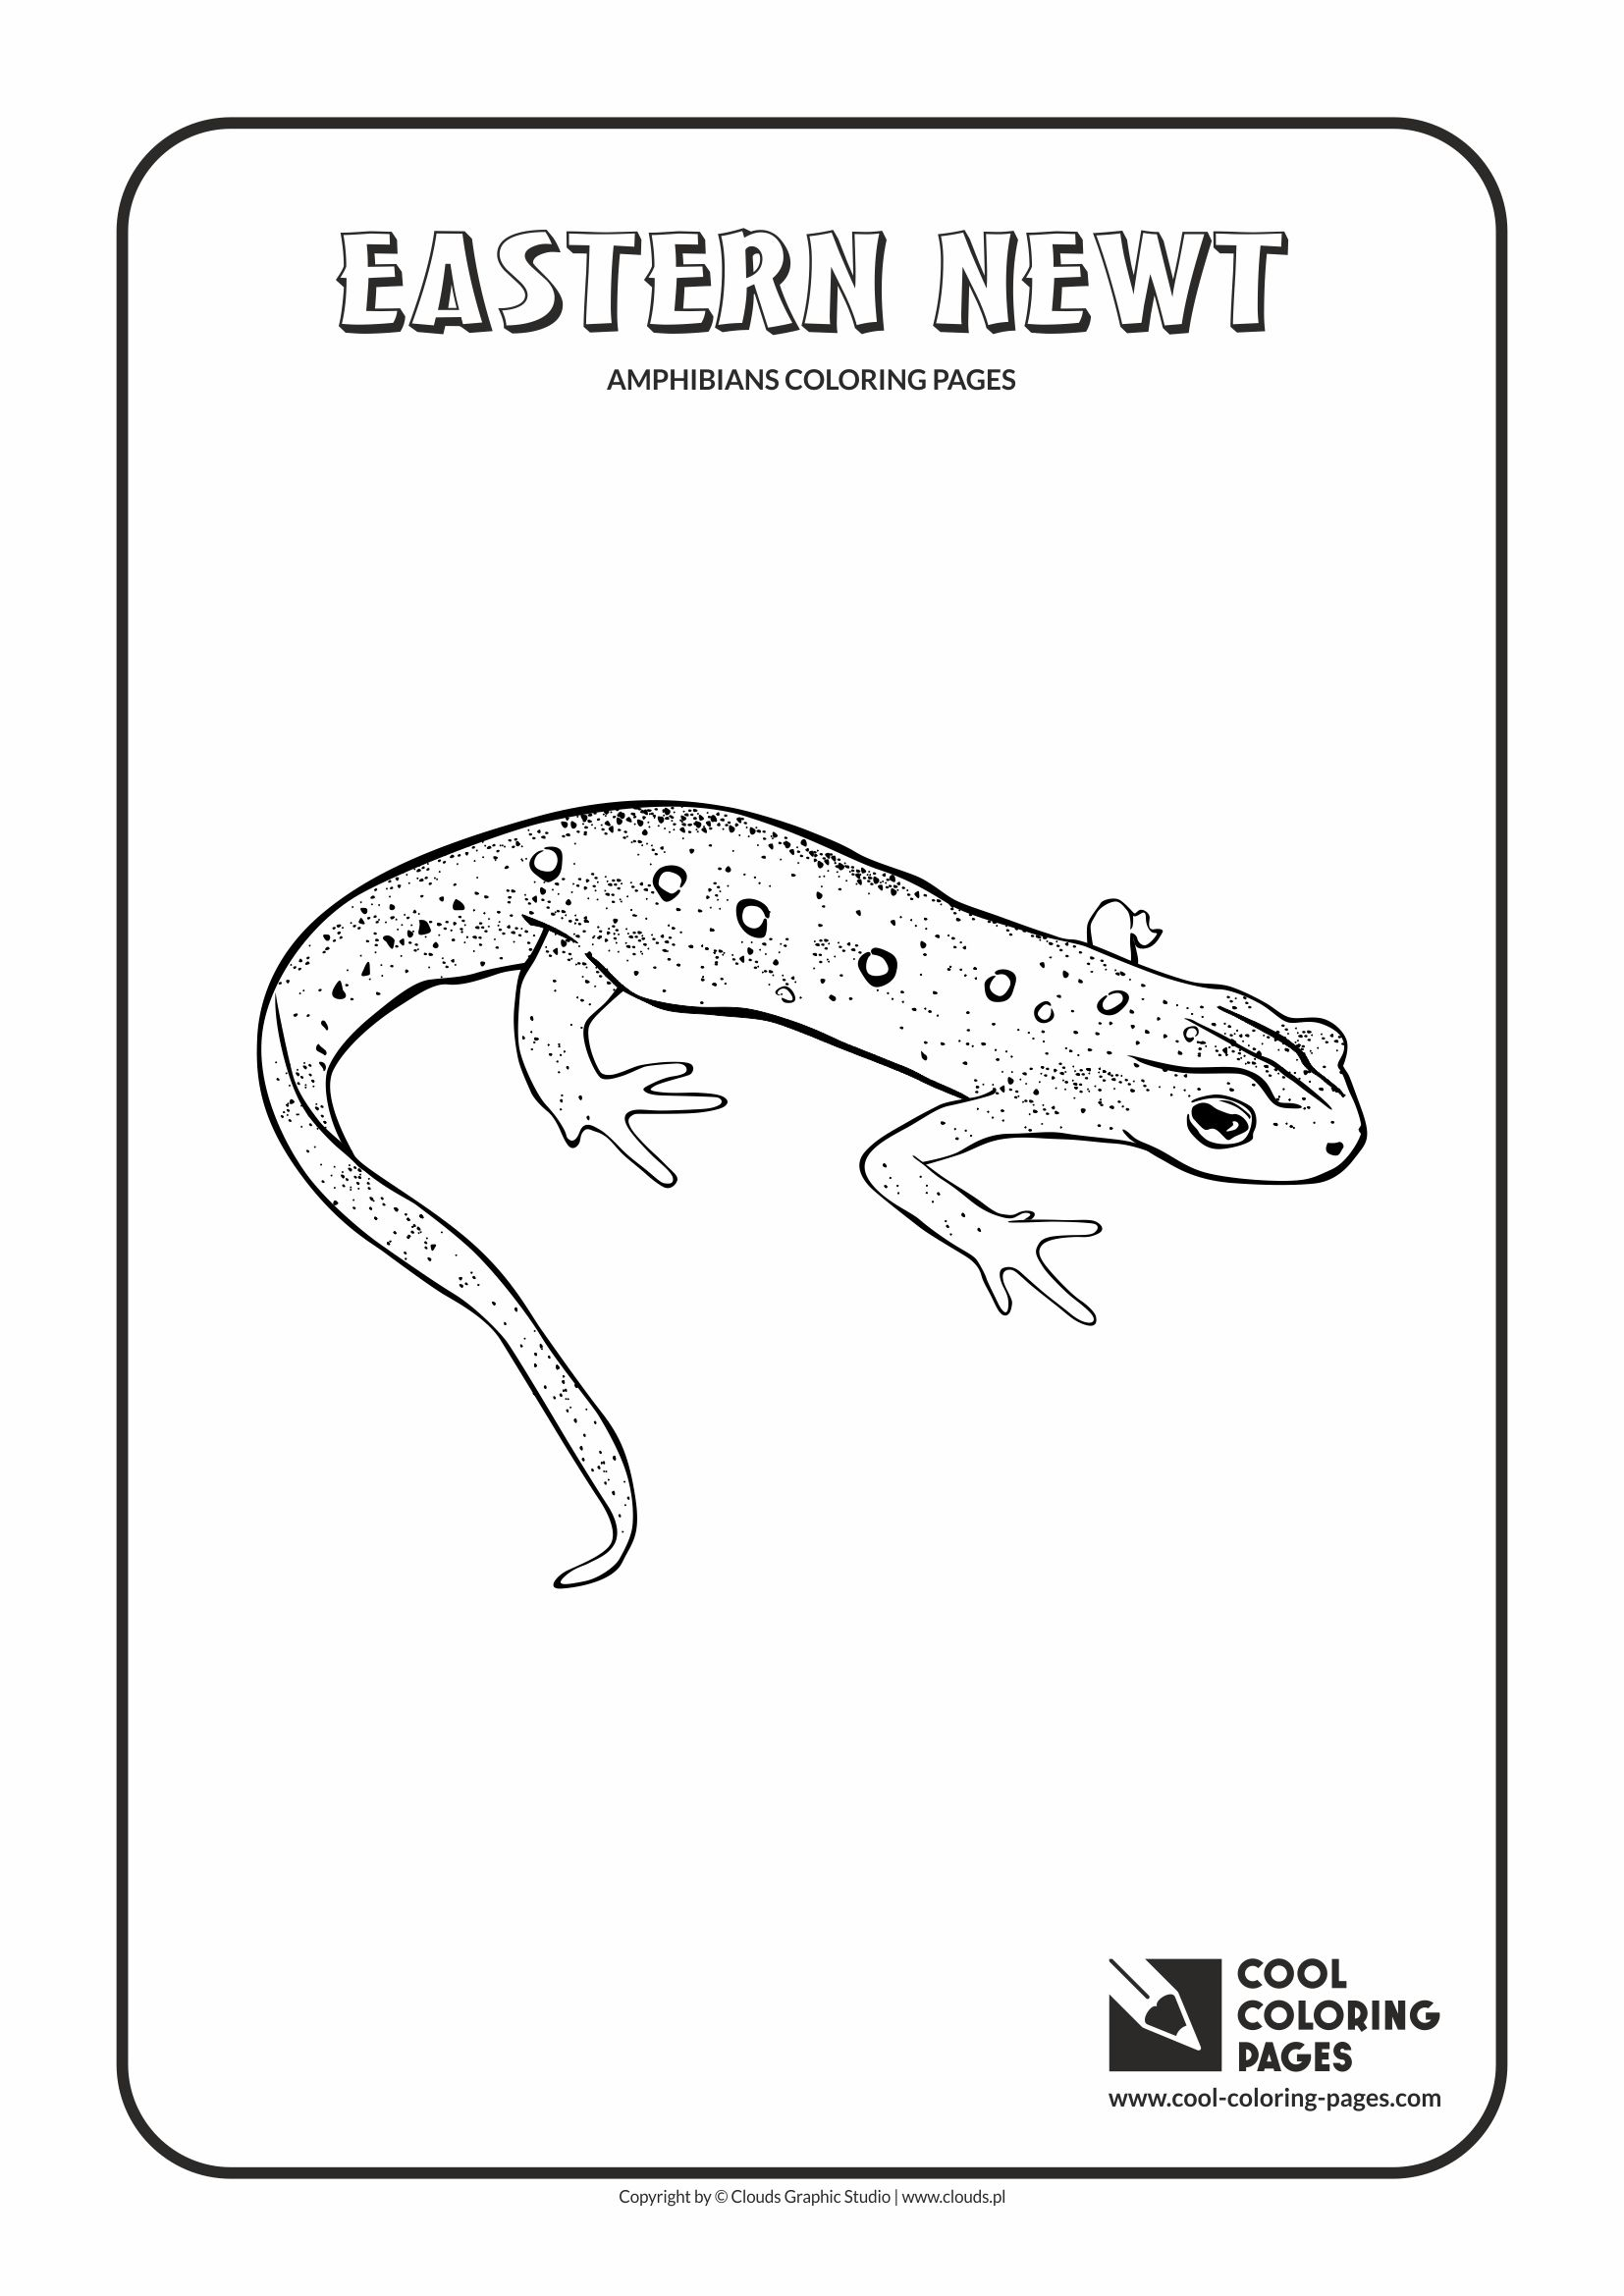 Cool Coloring Pages Animals coloring